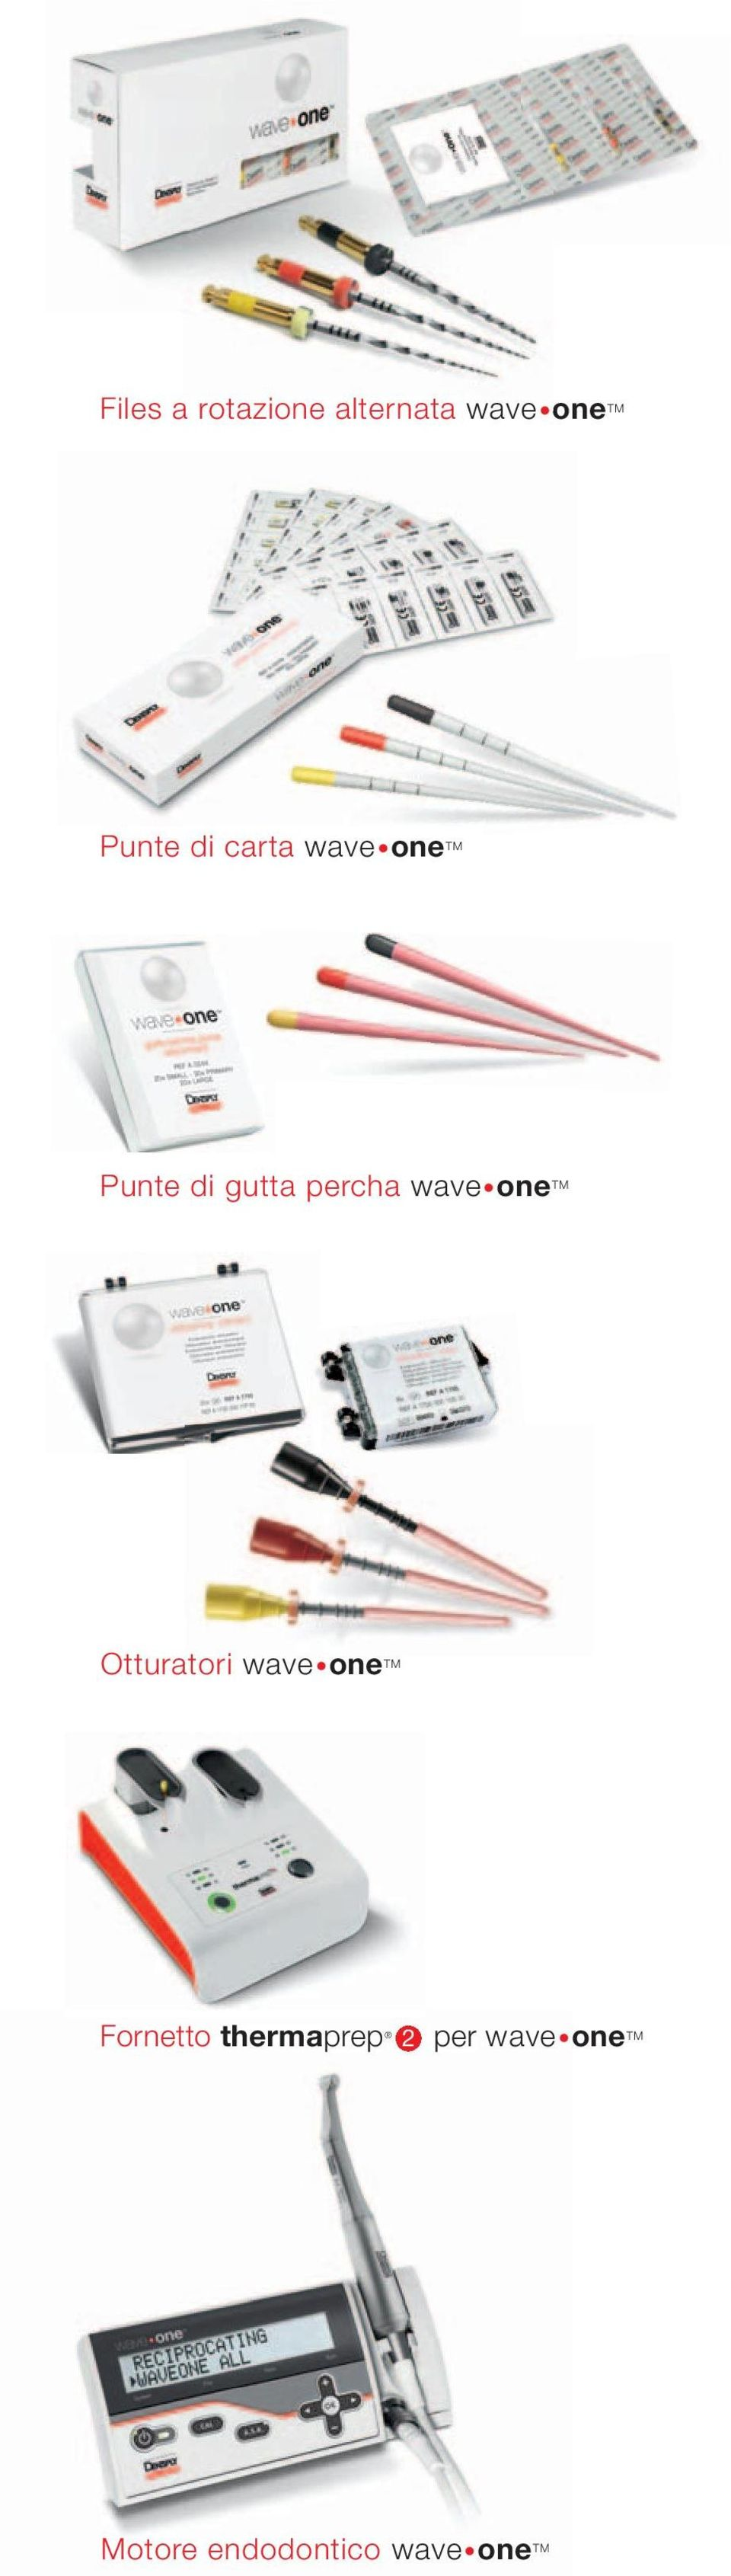 one TM Otturatori t wave one TM Fornetto